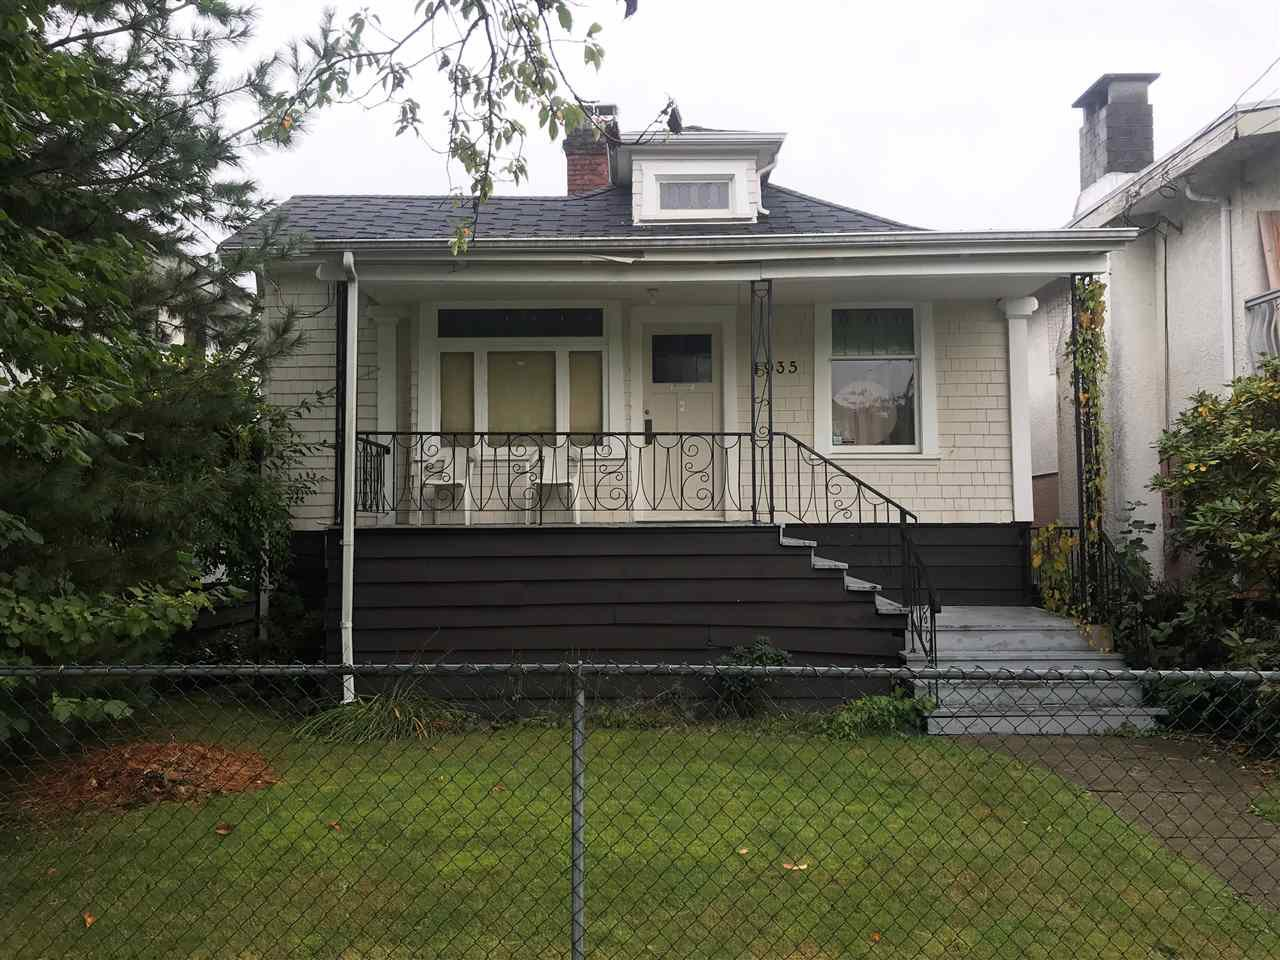 Main Photo: 4935 MOSS Street in Vancouver: Collingwood VE House for sale (Vancouver East)  : MLS®# R2509862